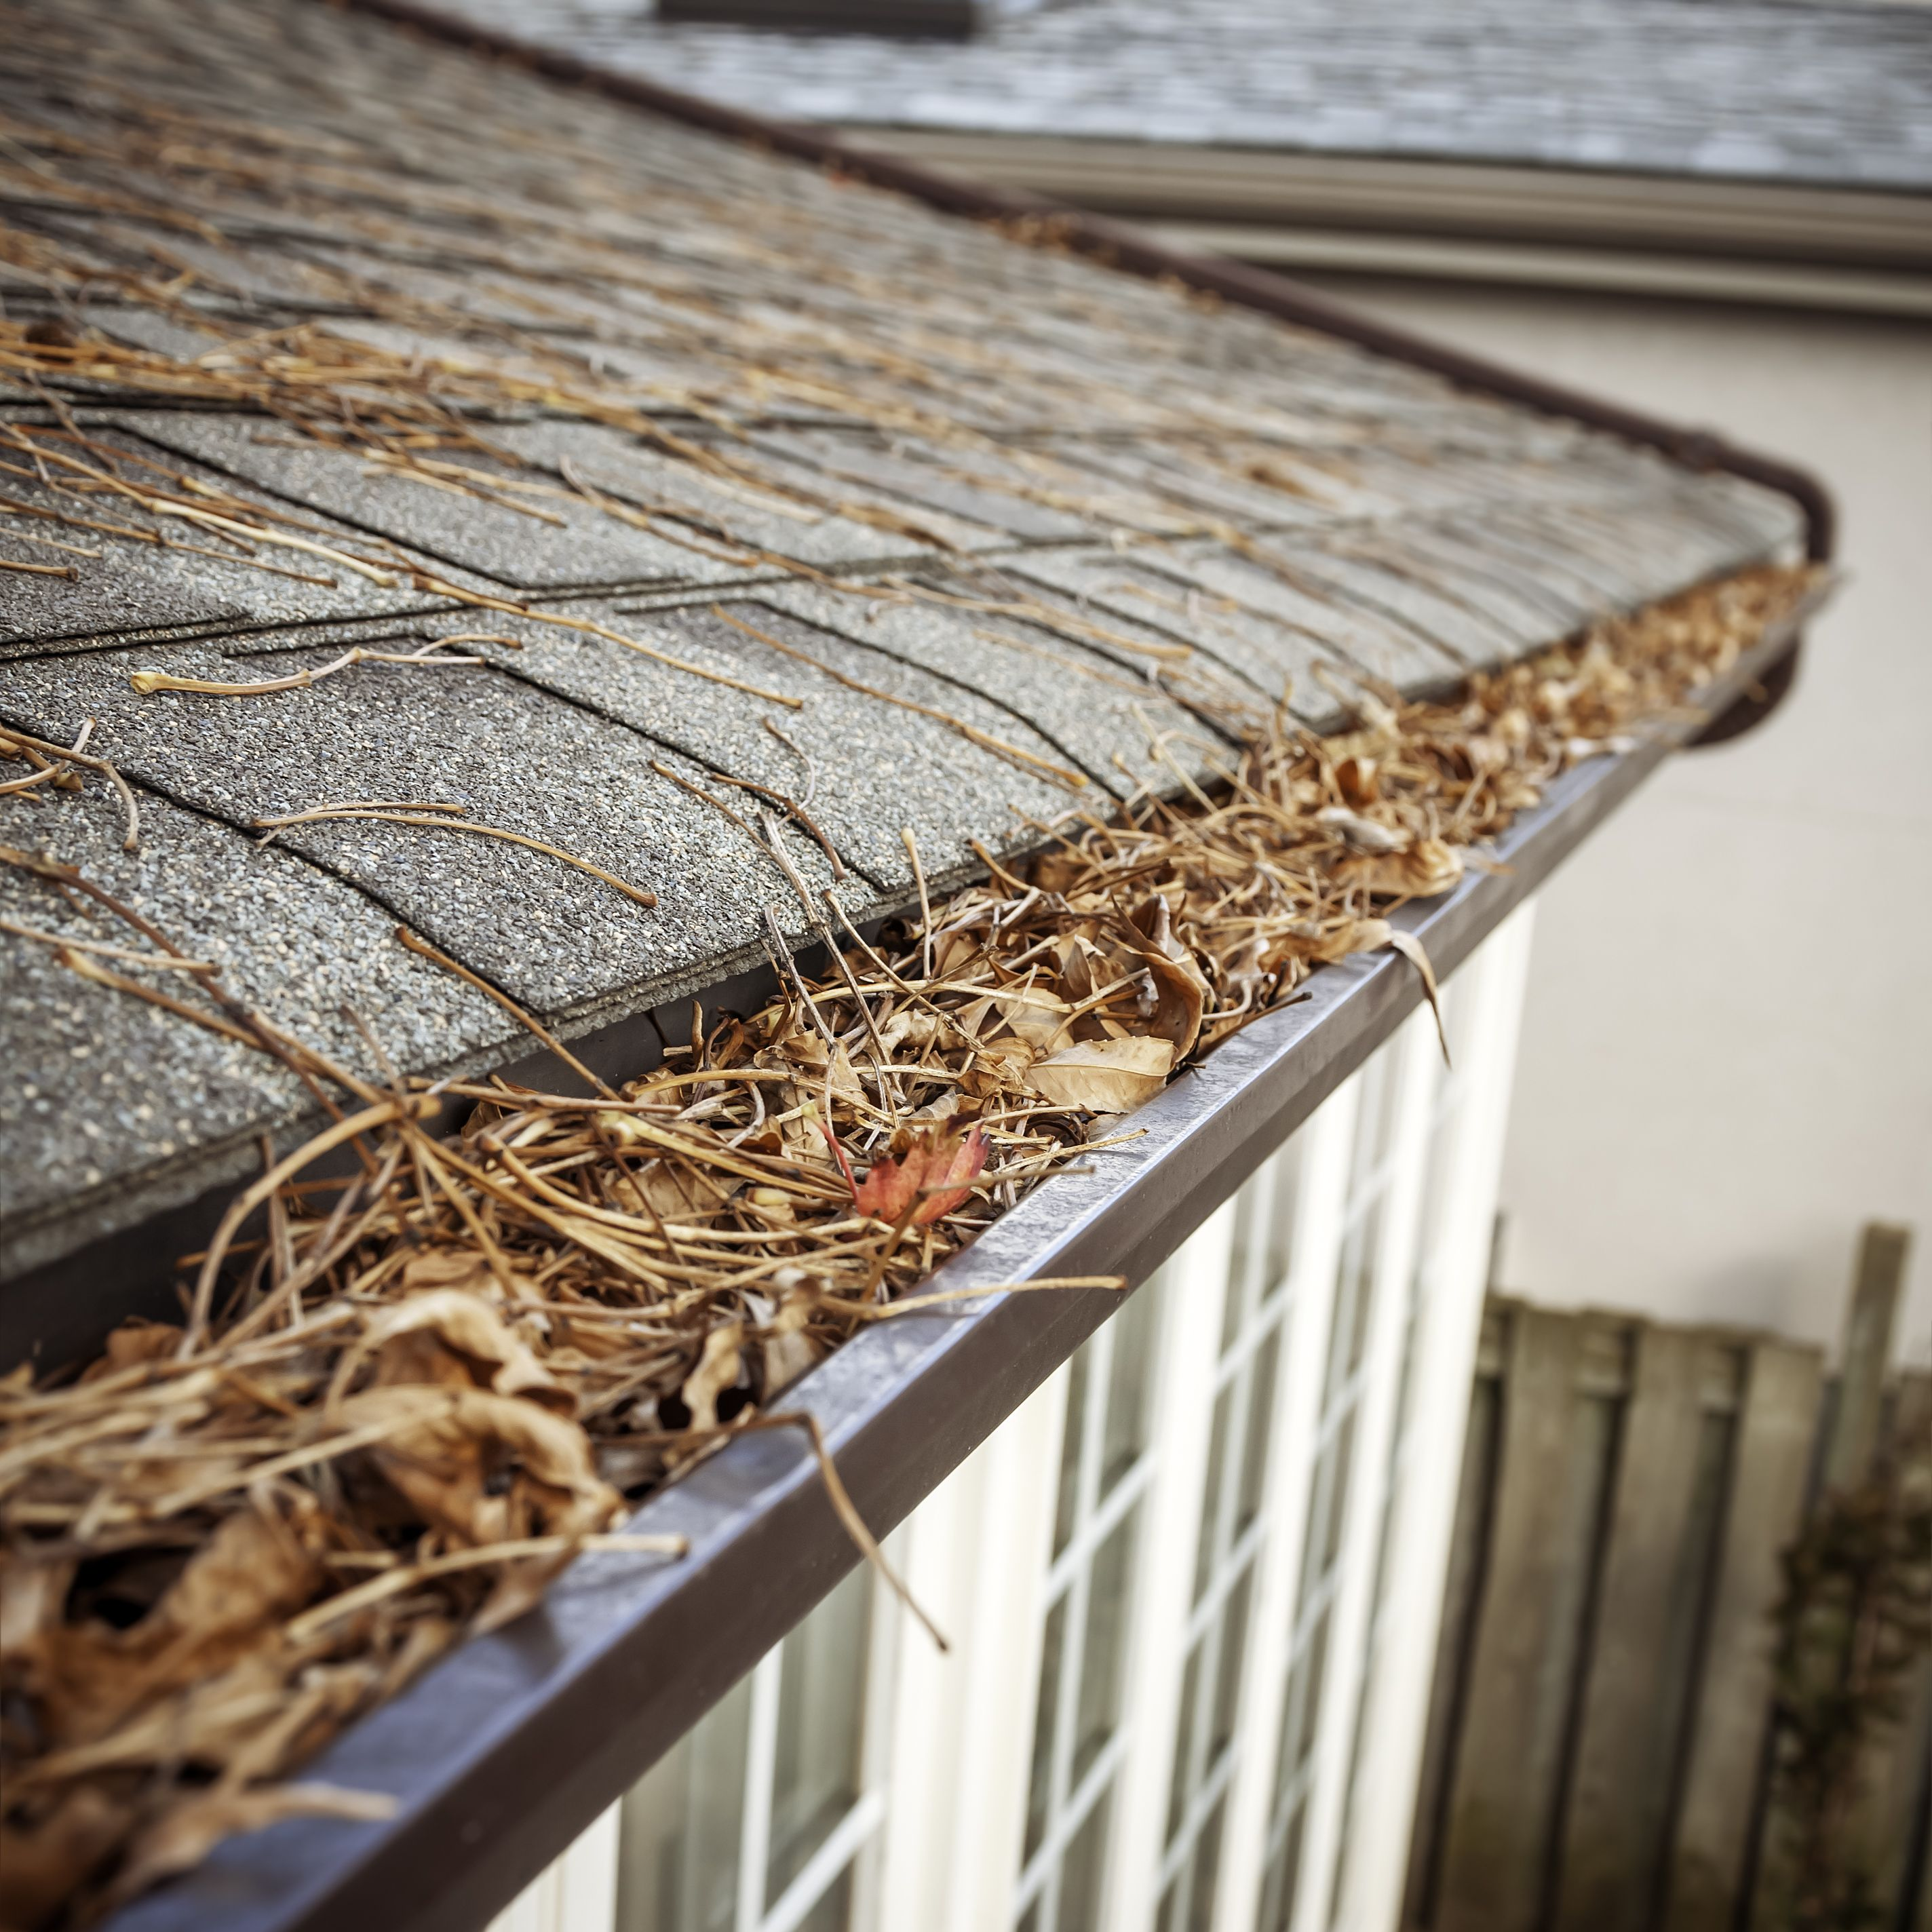 How to Repair Your Gutters and Save Your Home